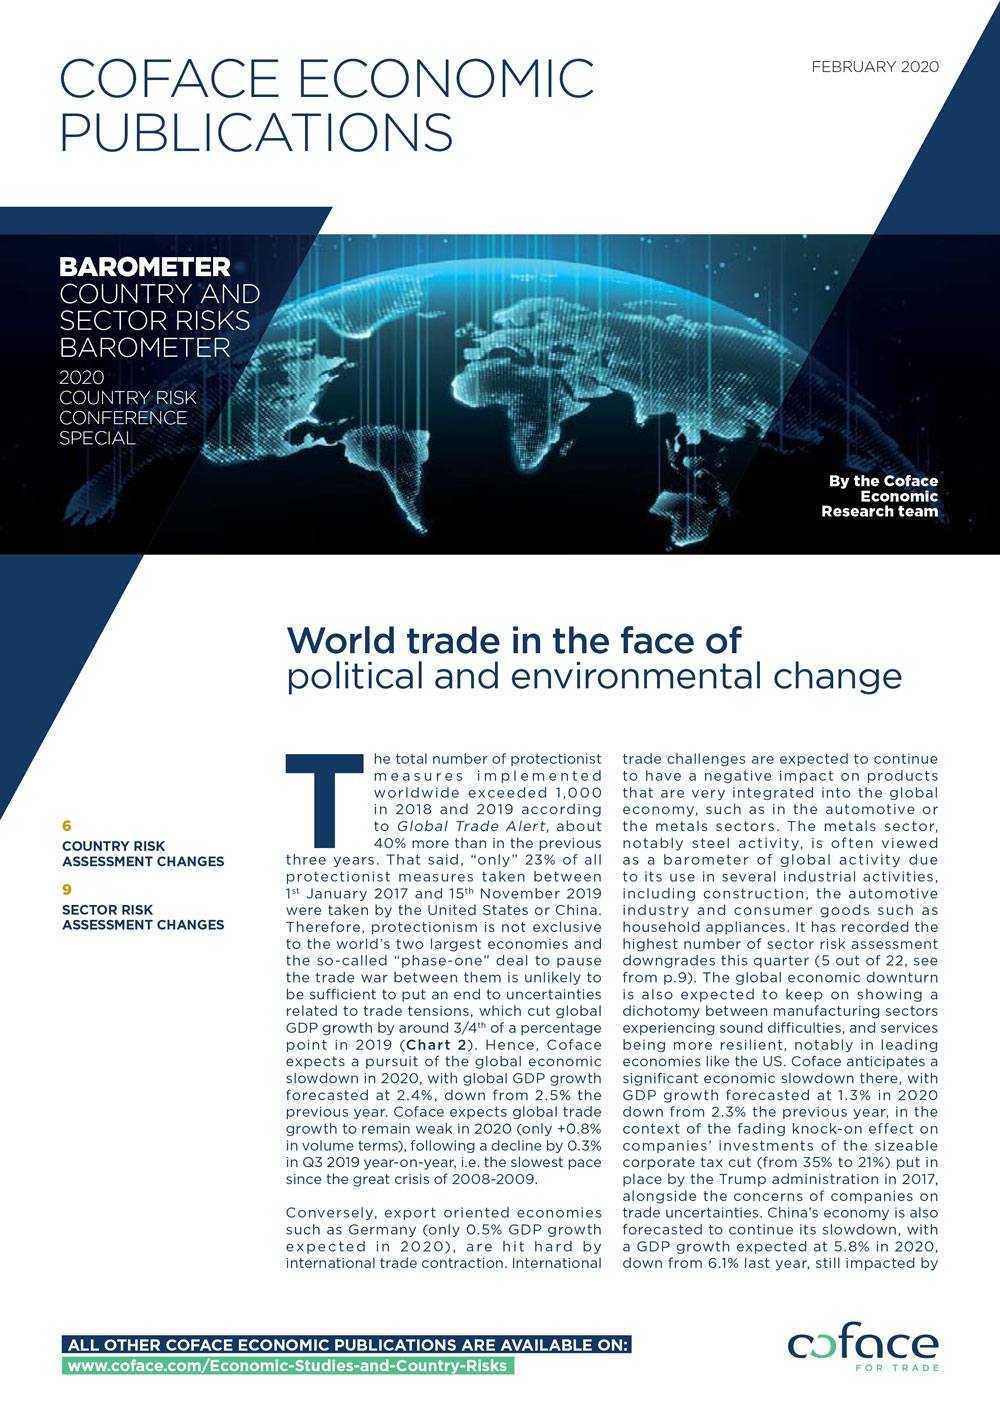 World trade in the face of political and environmental change